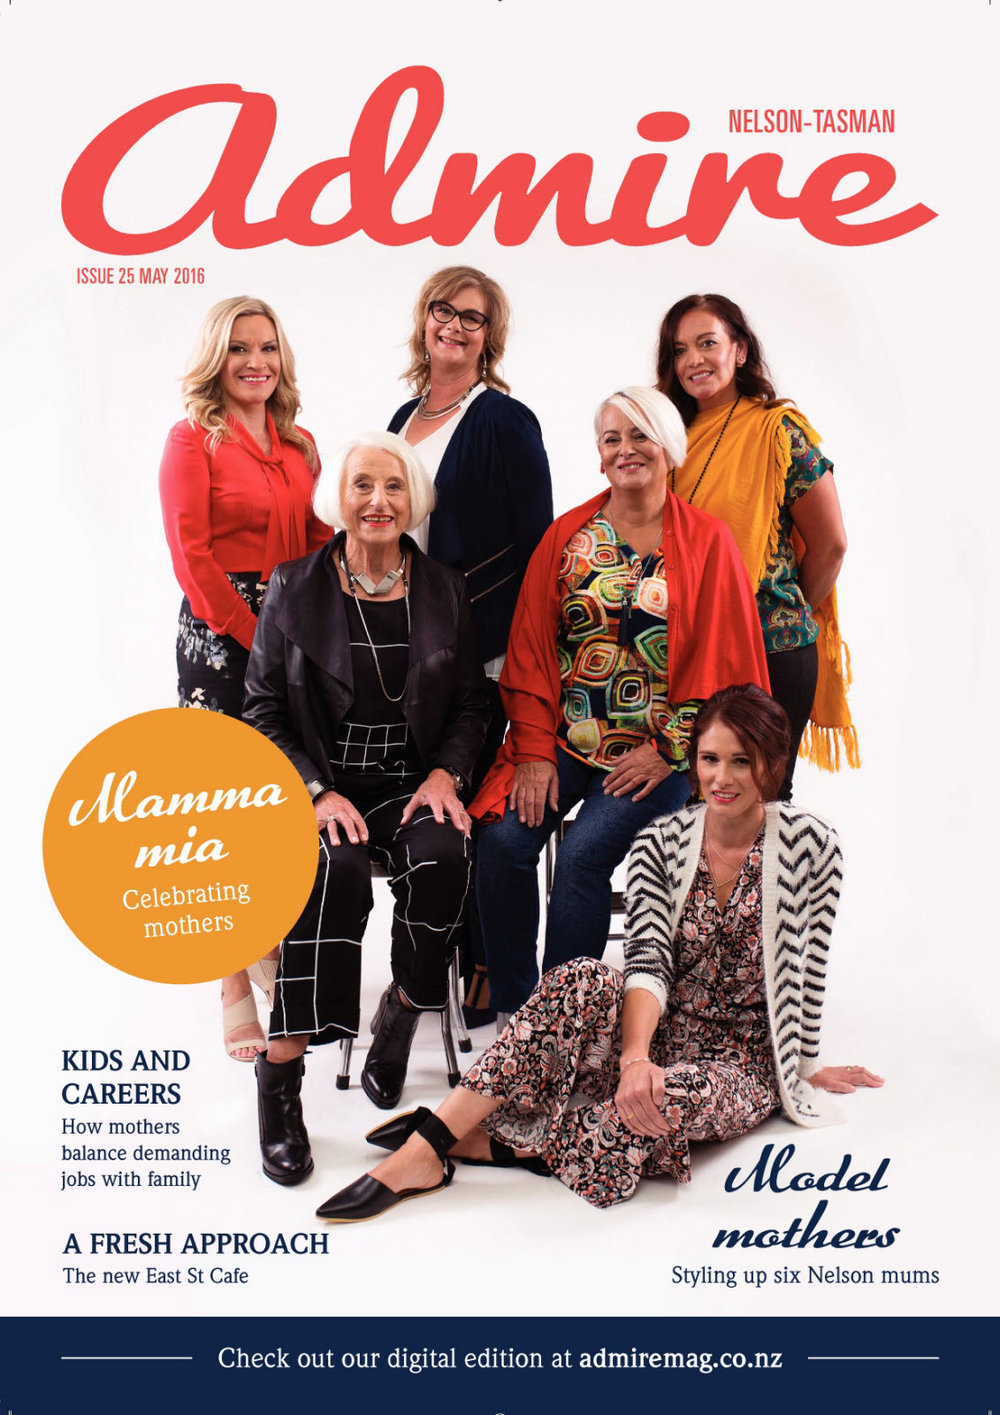 May 2016 - Our decades feature with beautiful models mothers from their 20s, 30s, 40s, 50s, 60s and 70s